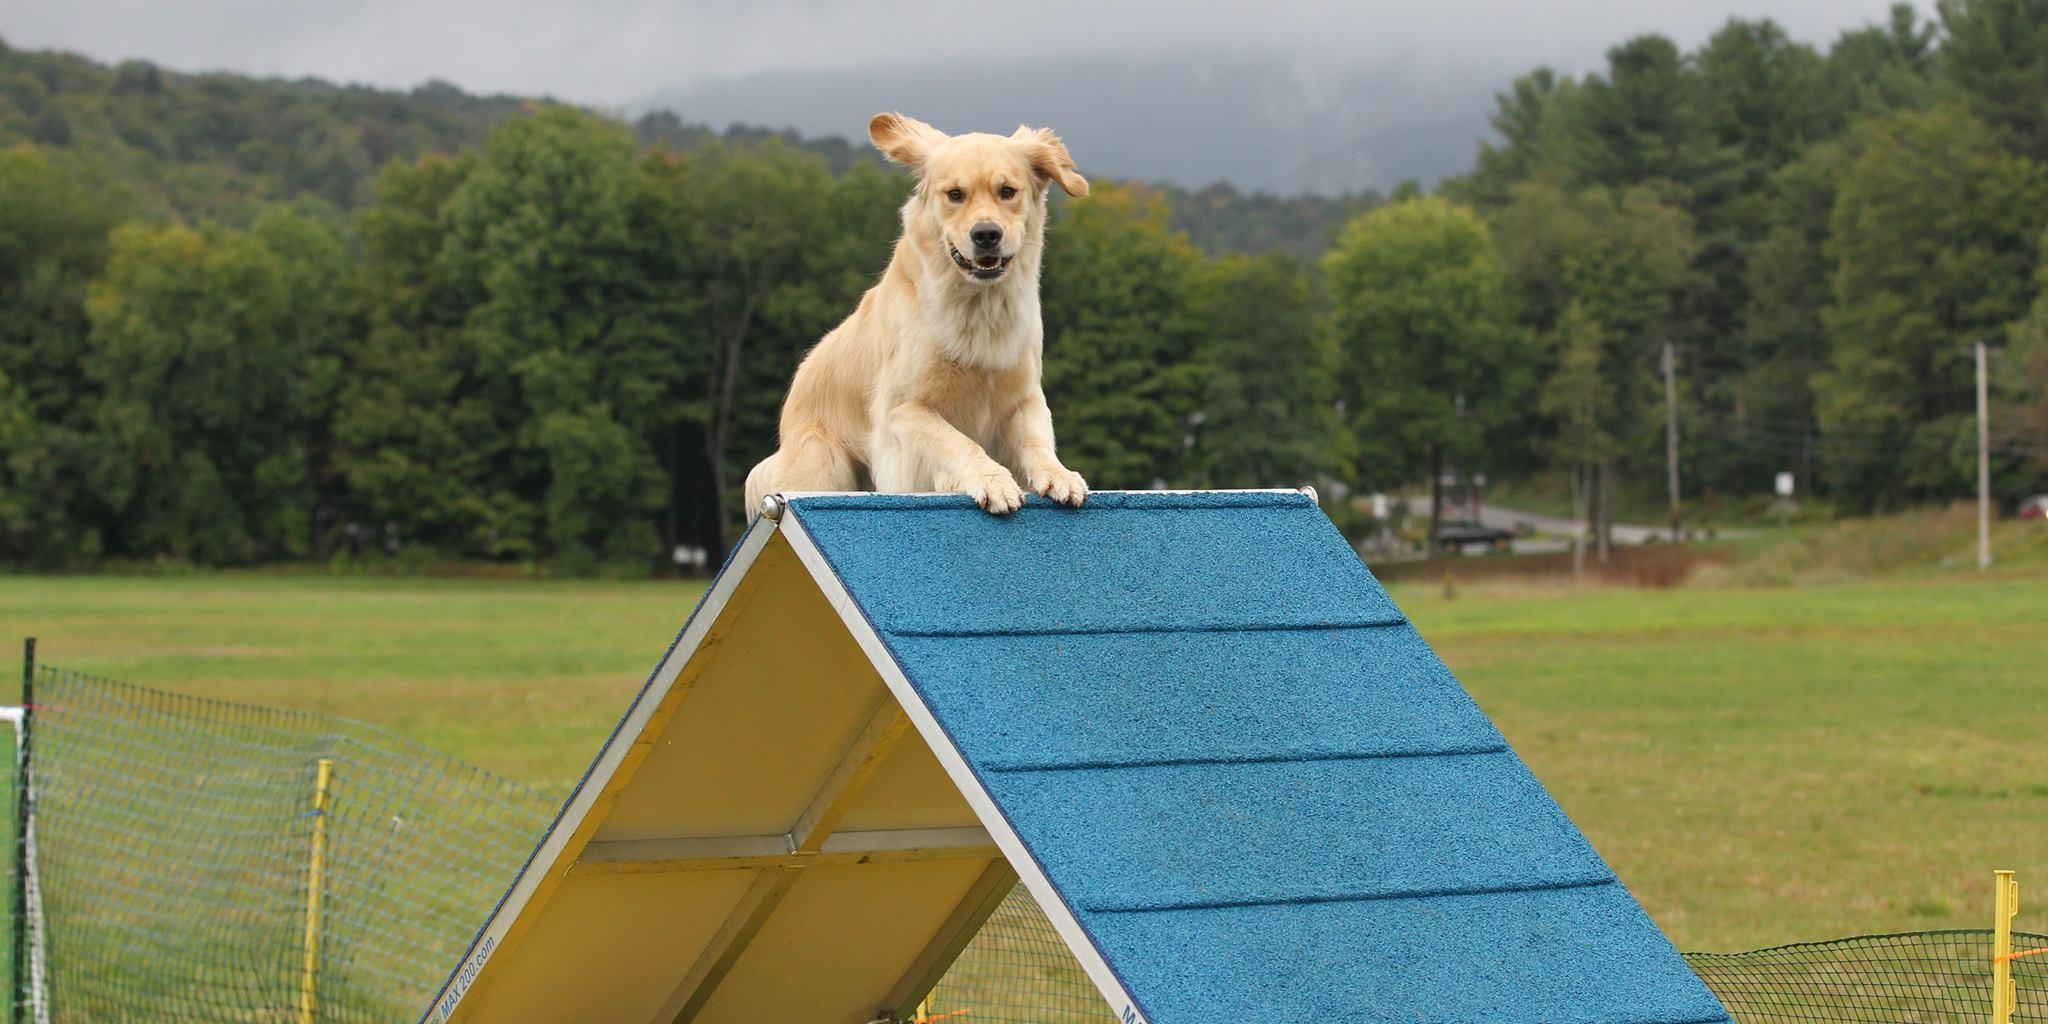 Bring Fido to a pet-friendly summer camp.